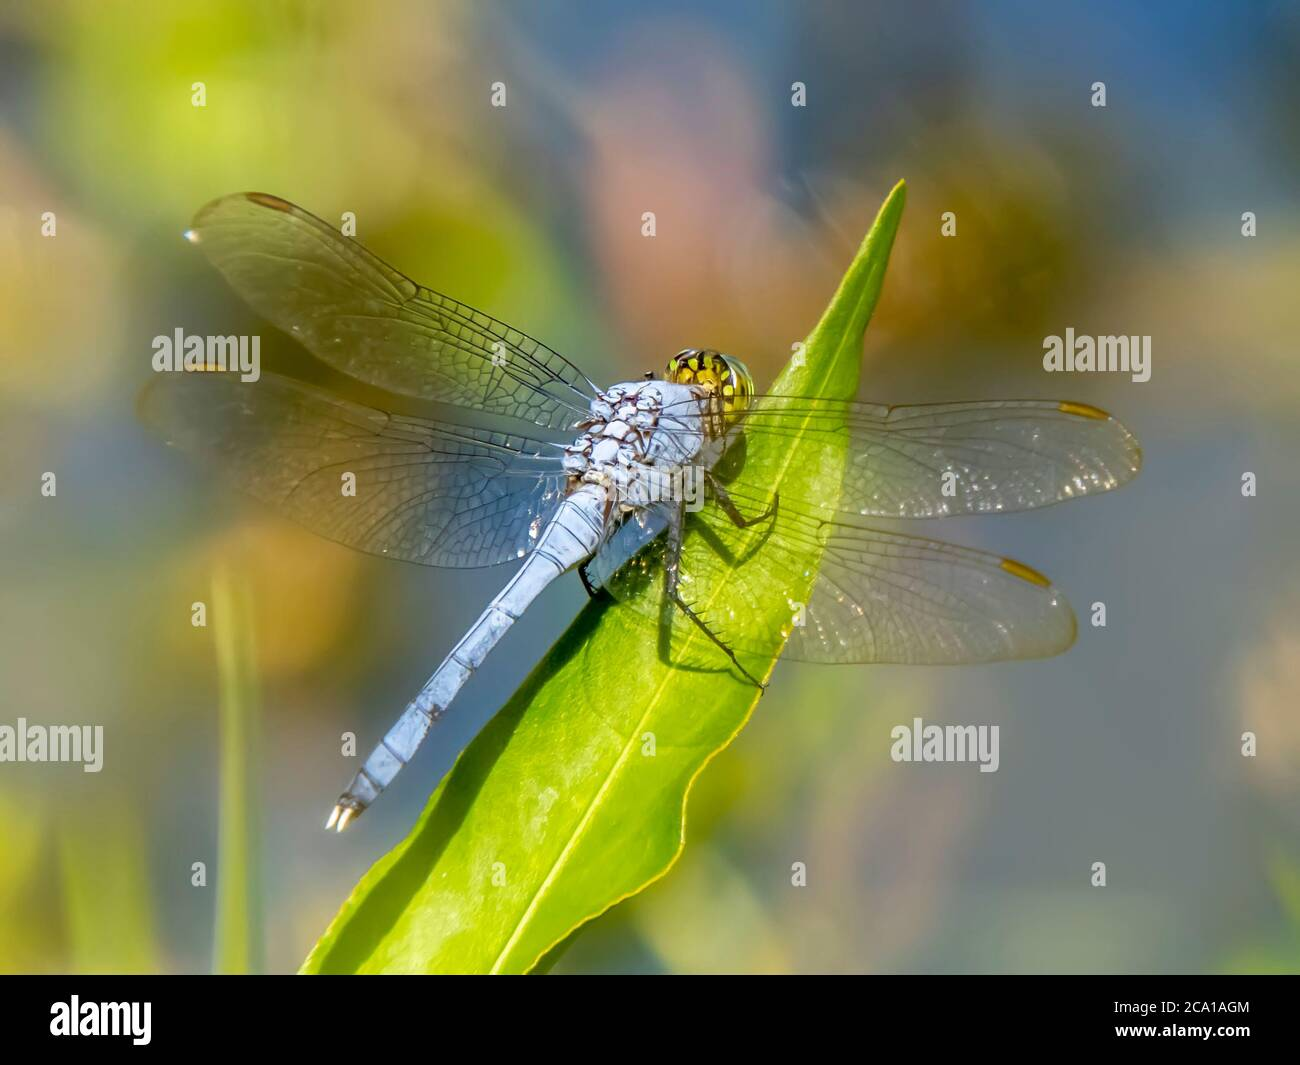 Close up of male Eastern or Common Pondhawk Dragonfly taken at Deer Prairie Creek Preserve in North Port Florida United States Stock Photo